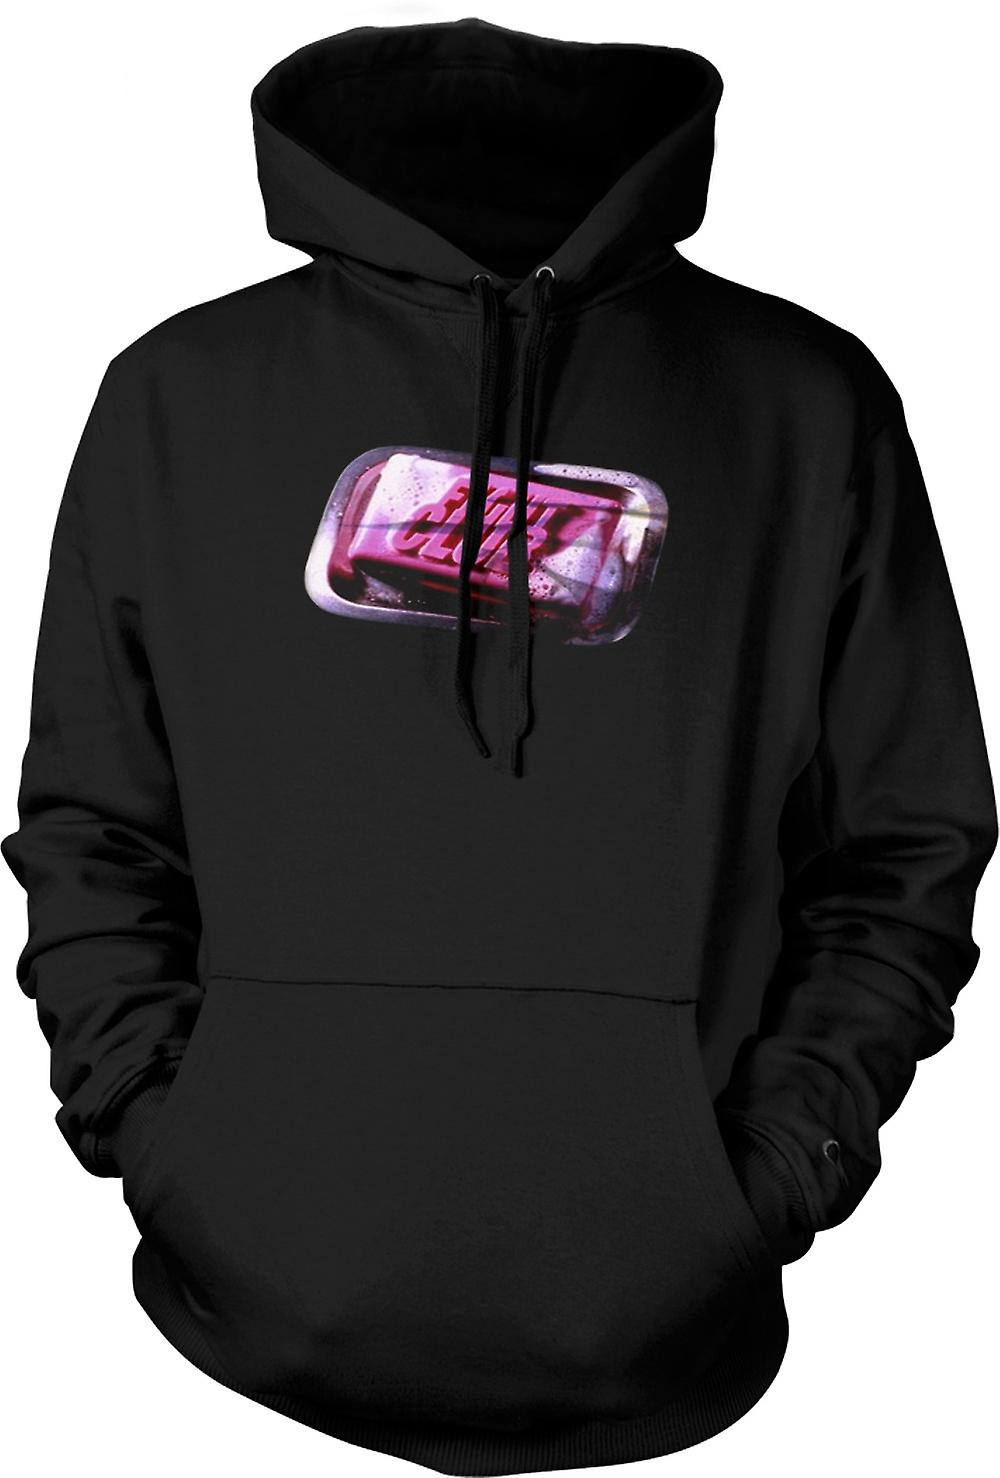 Mens Hoodie - Fight Club - Soap - Film